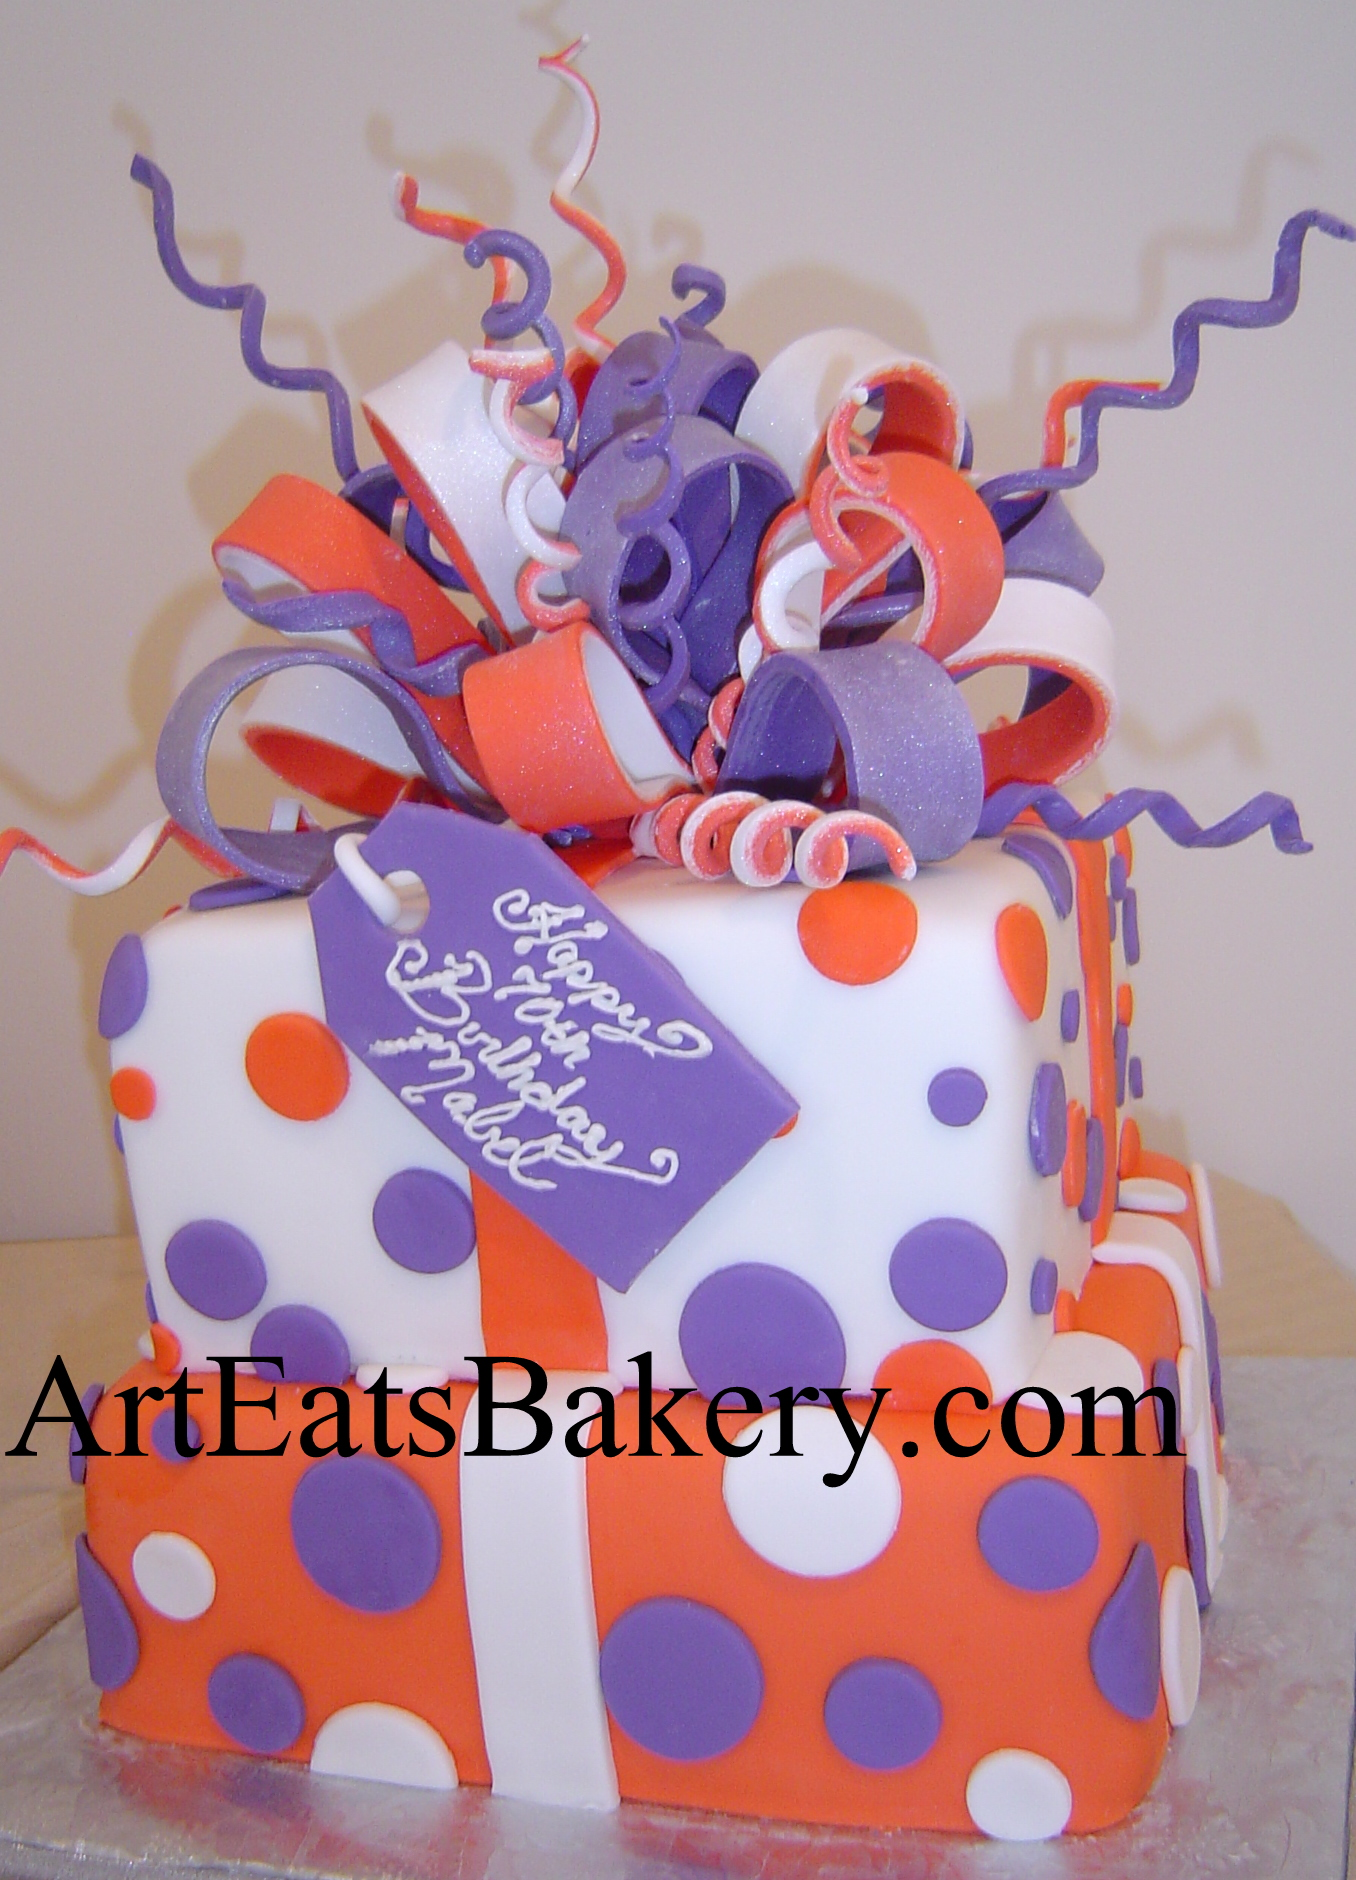 Two tier square Clemson orange, purple and white present design 70th birthday cake with large sugar bow.jpg